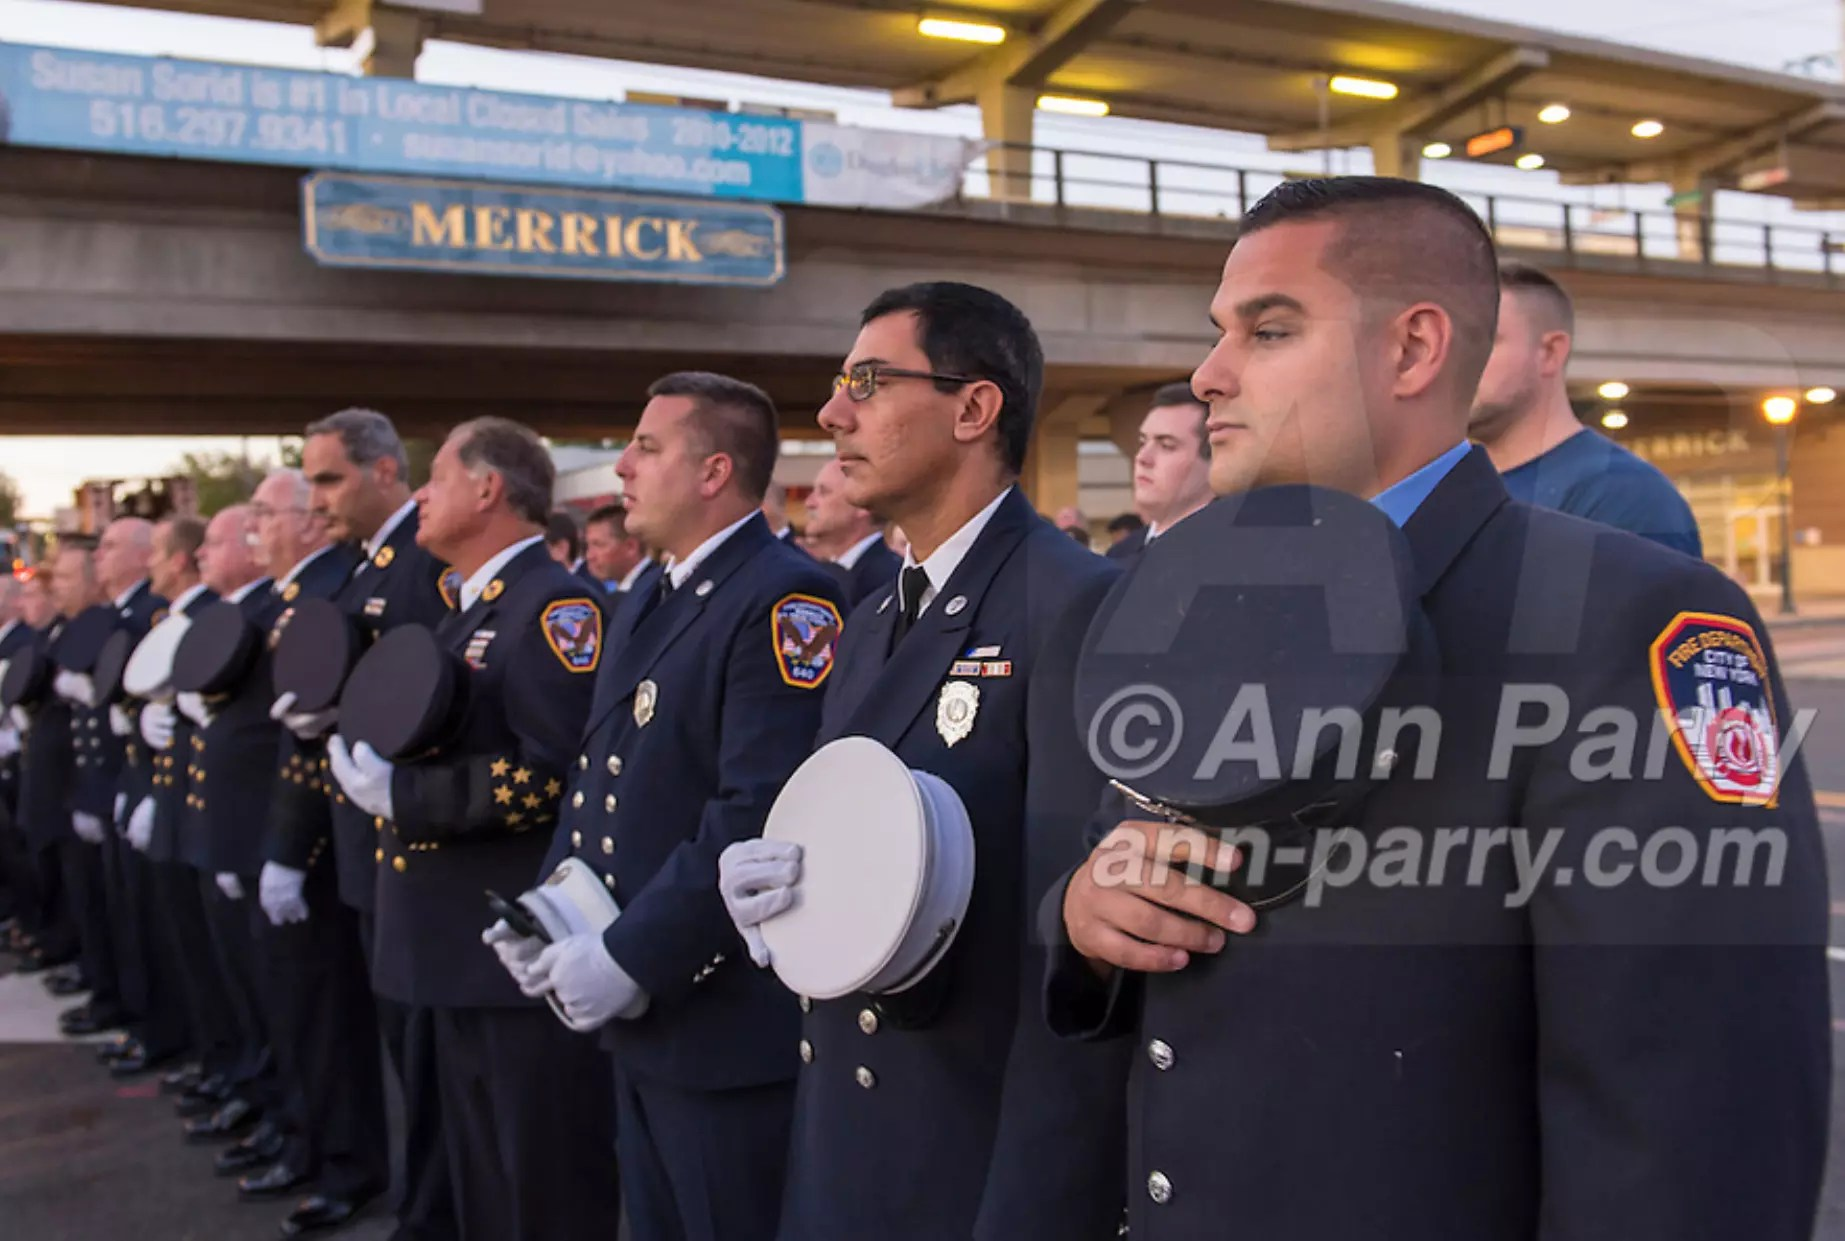 Merrick, NY, USA. 11th Sep.2015. Firefighters from Merrick & NYC stand in line and hold their caps over their hearts during Merrick Memorial Ceremony for Merrick volunteer firefighters and residents who died due to 9/11 terrorist attack at NYC Twin Towers. Ex-Chief Ronnie E. Gies, of Merrick F.D. and FDNY Squad 288, and Ex-Captain Brian E. Sweeney, of Merrick F.D. and FDNY Rescue 1, died responding to the attacks on September 11, 2001.